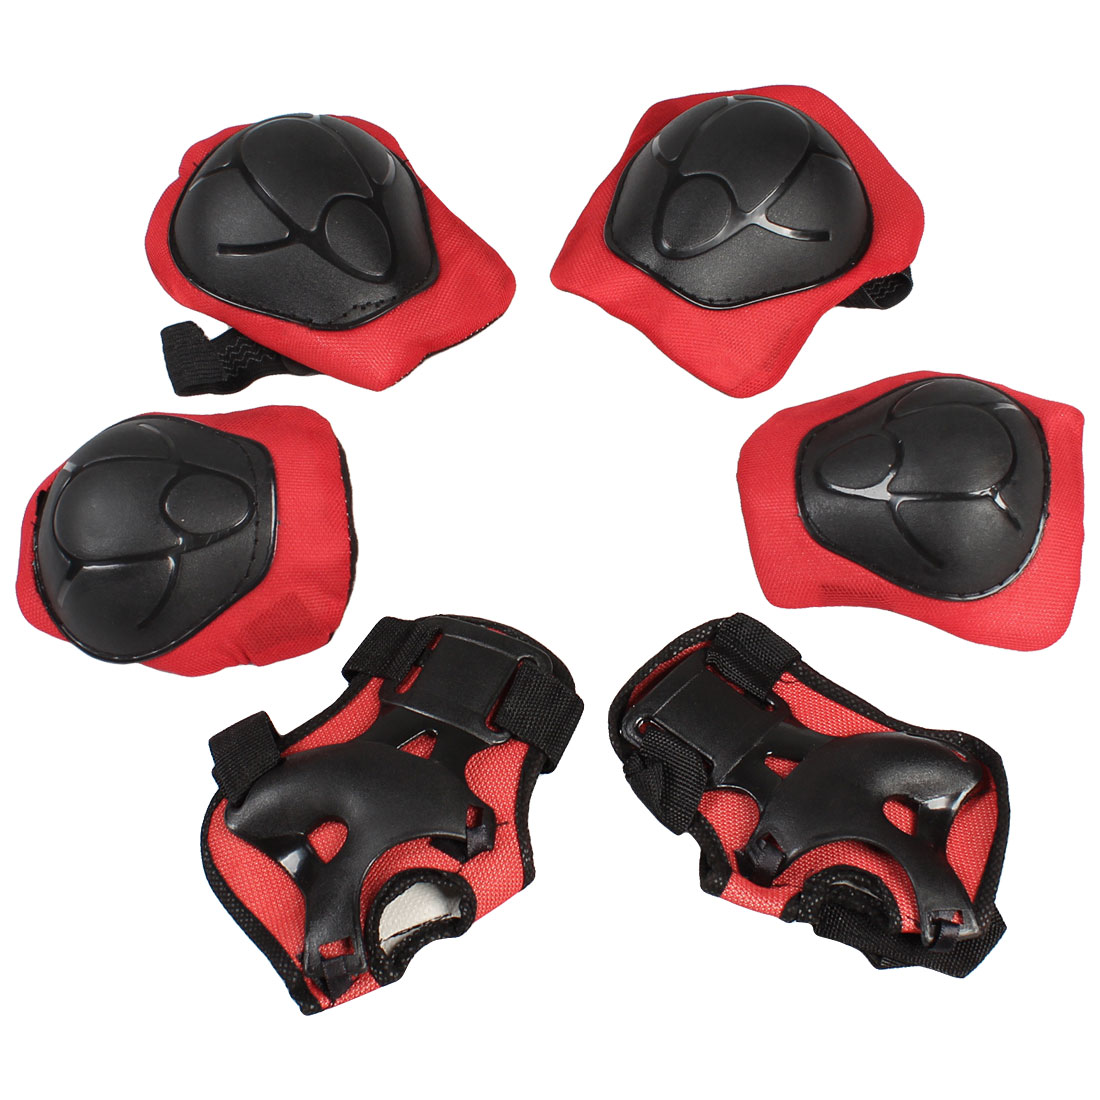 Set 6 in 1 Skating Palm Elbow Knee Support Protector Guard Red Black for Child